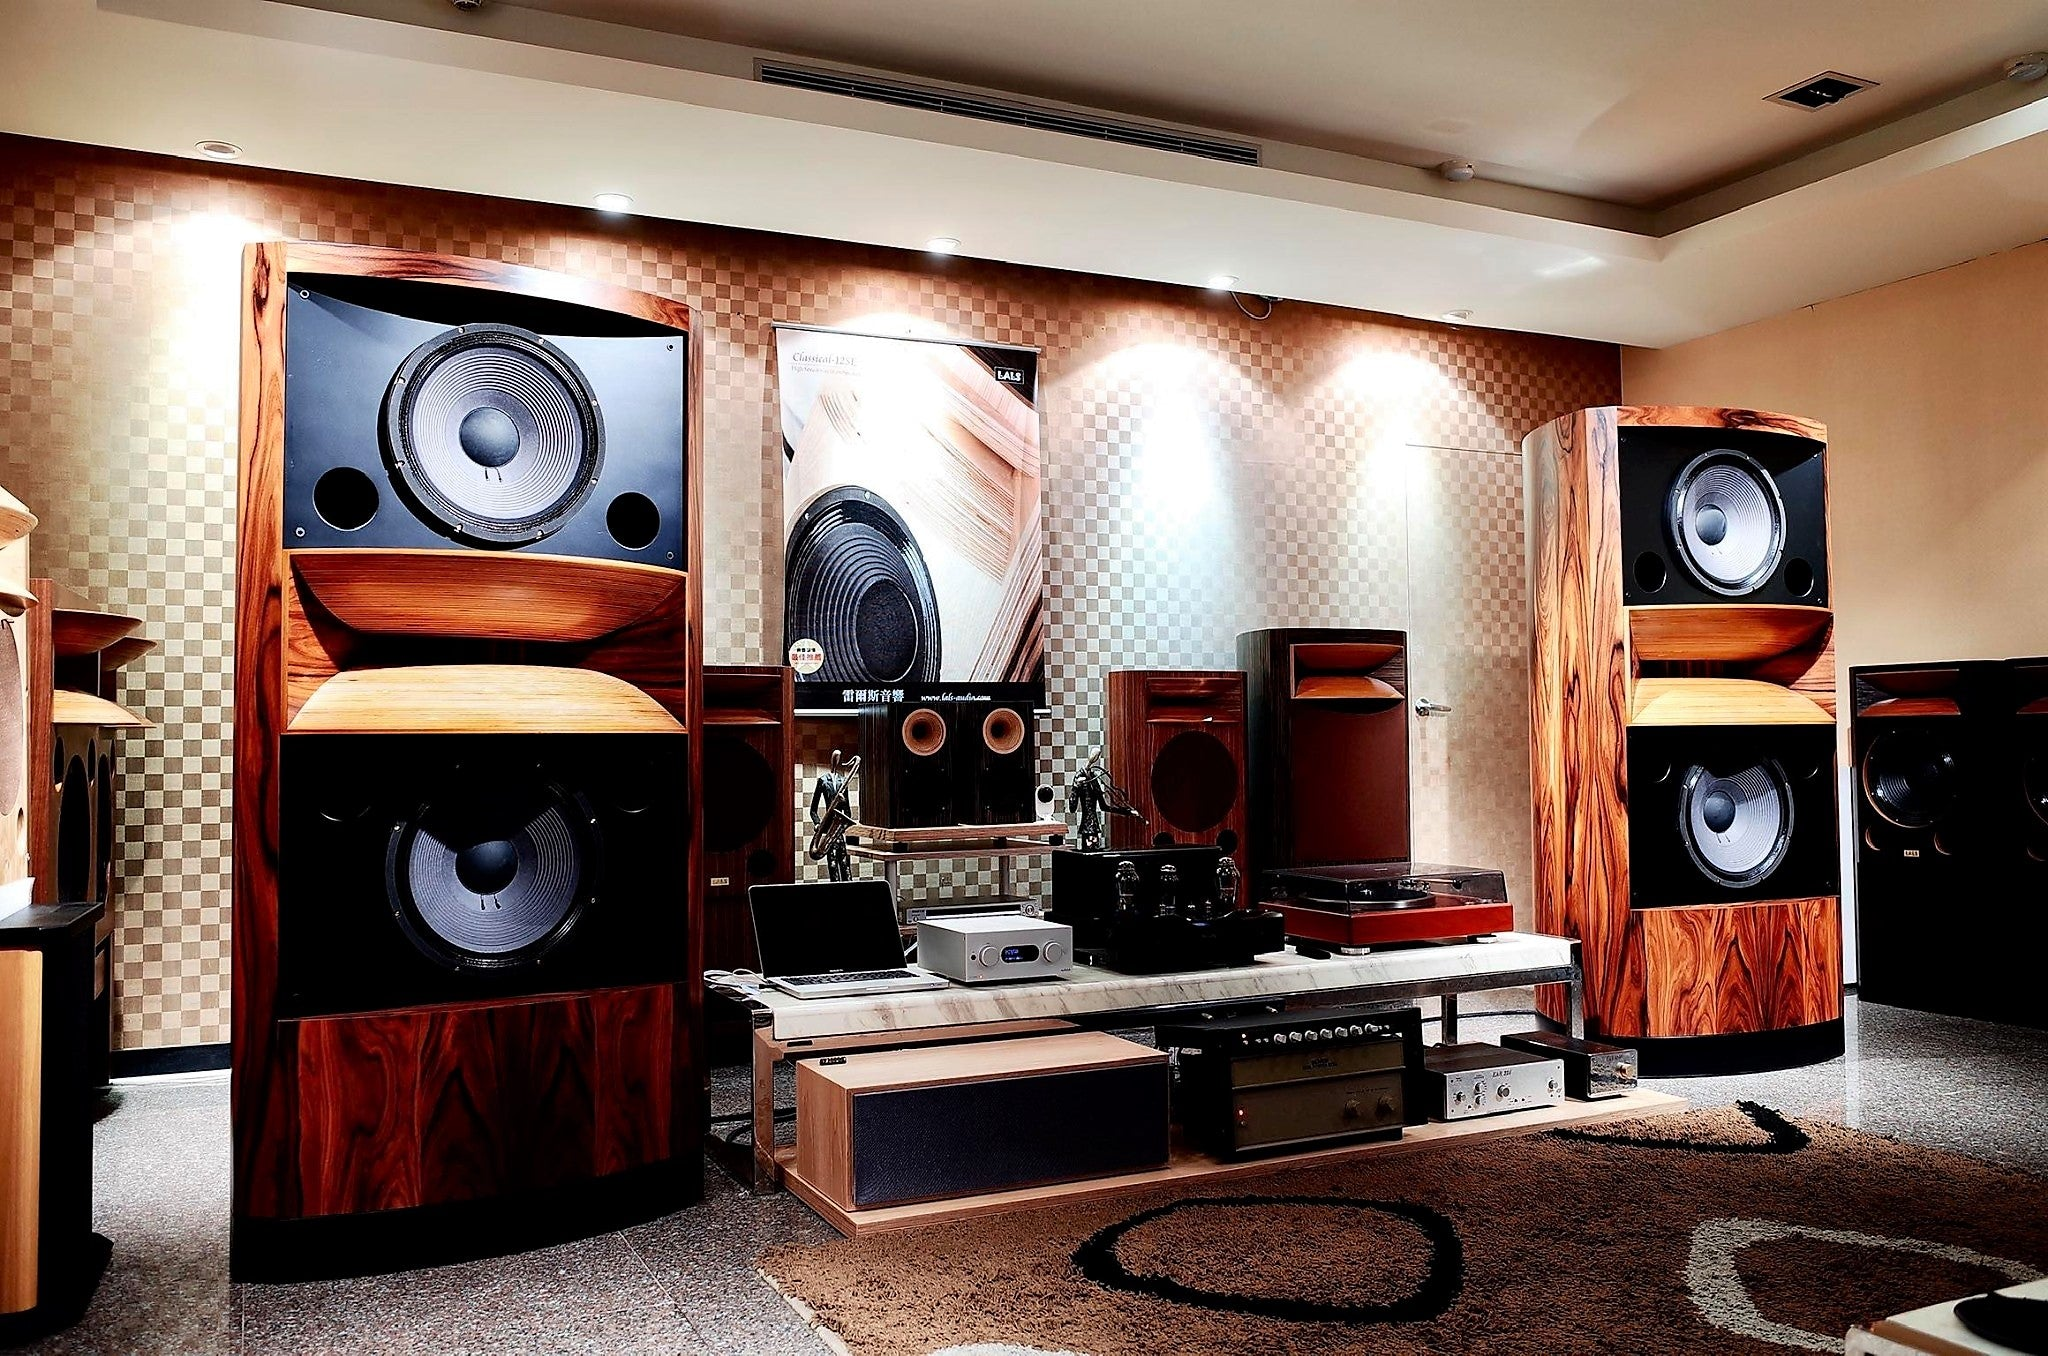 LALS-Classical-152-Horn-Speakers-Flagship-Audio-System